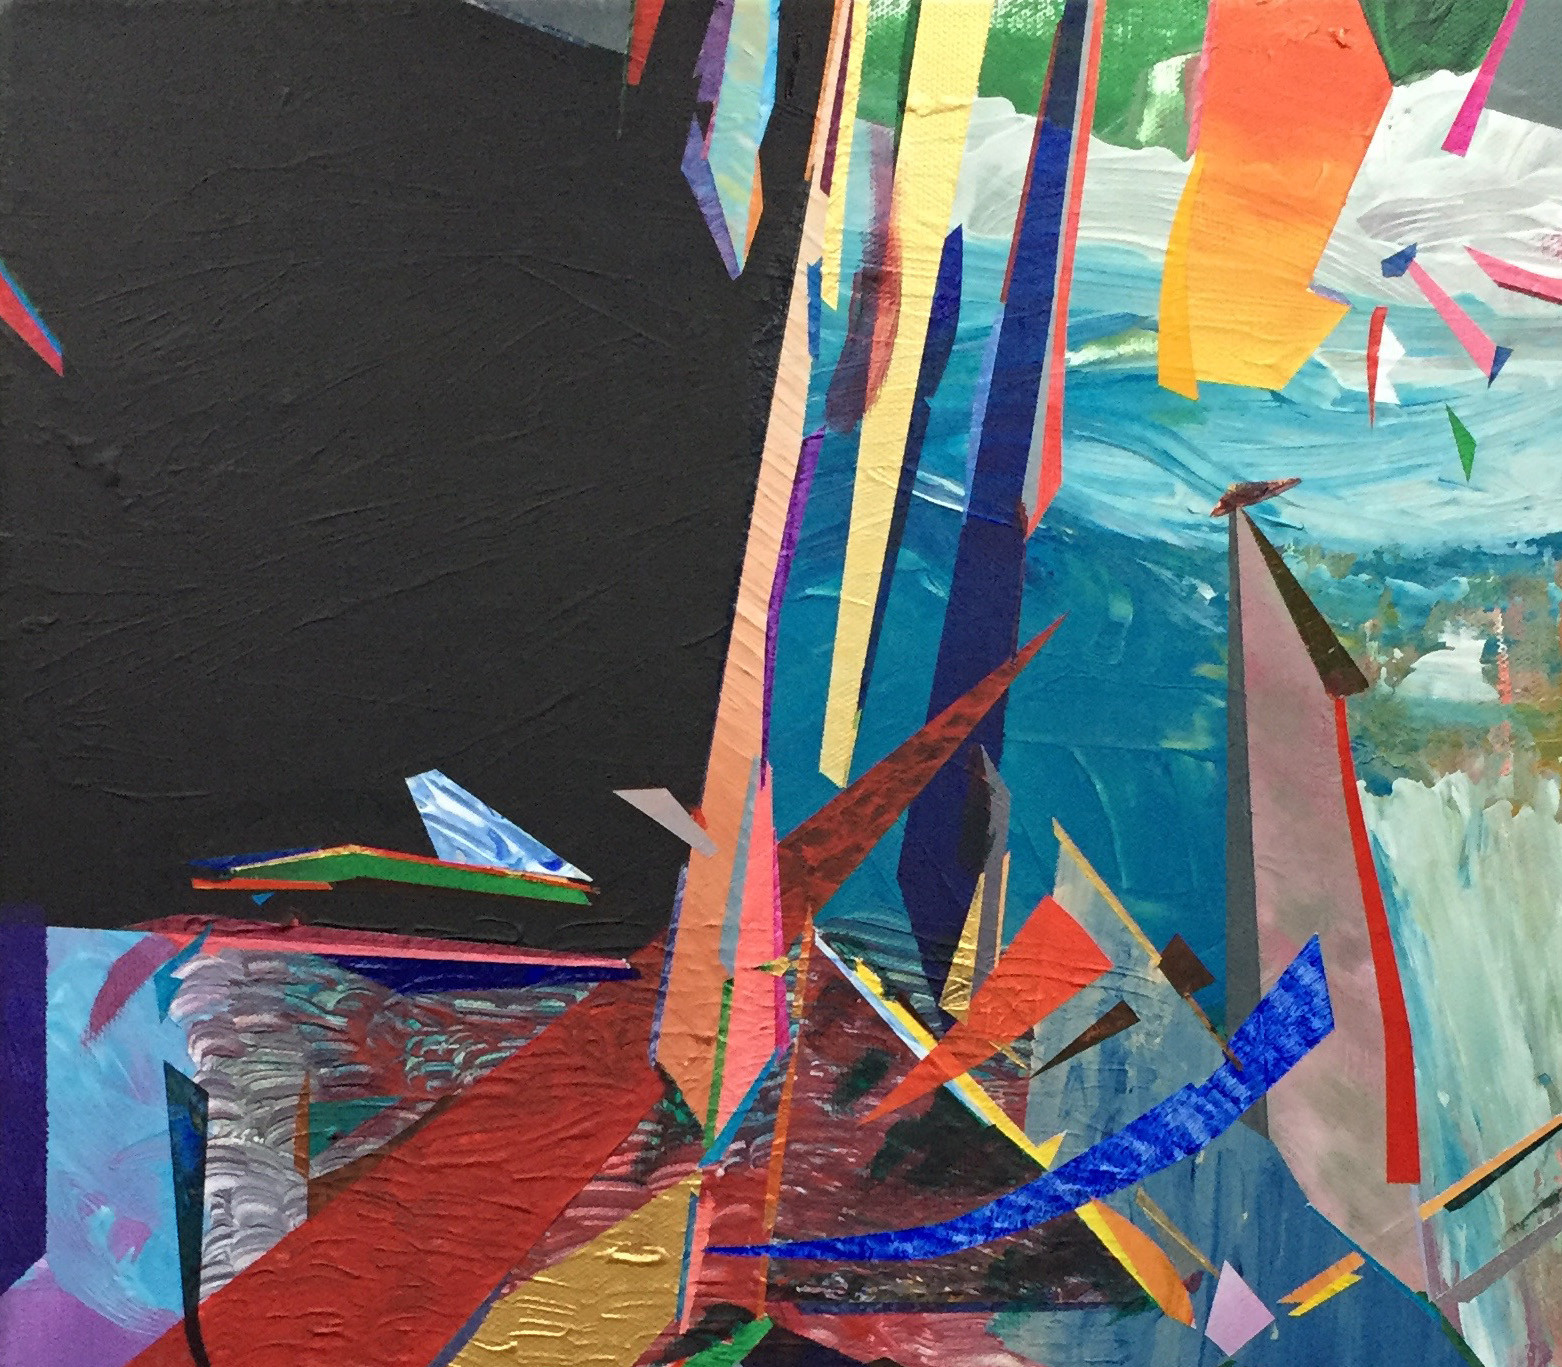 The Crossing (detail), 2017